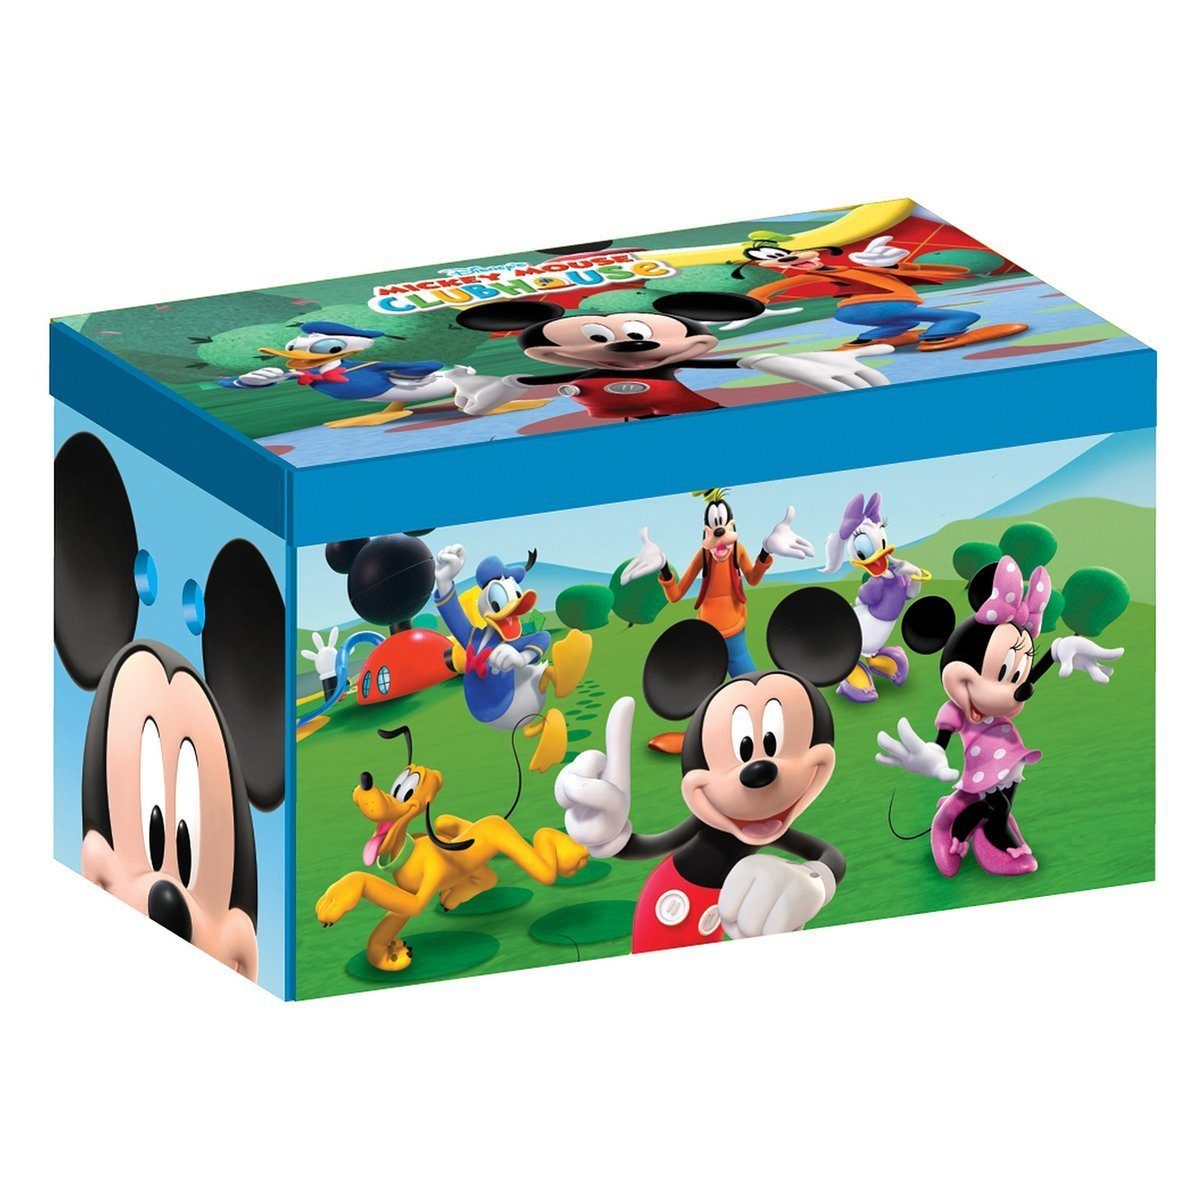 Disney Collapsible Storage Trunk Toy Box Organizer Chest: Disney Mickey Mouse Collapsible Fabric Toy Box Storage